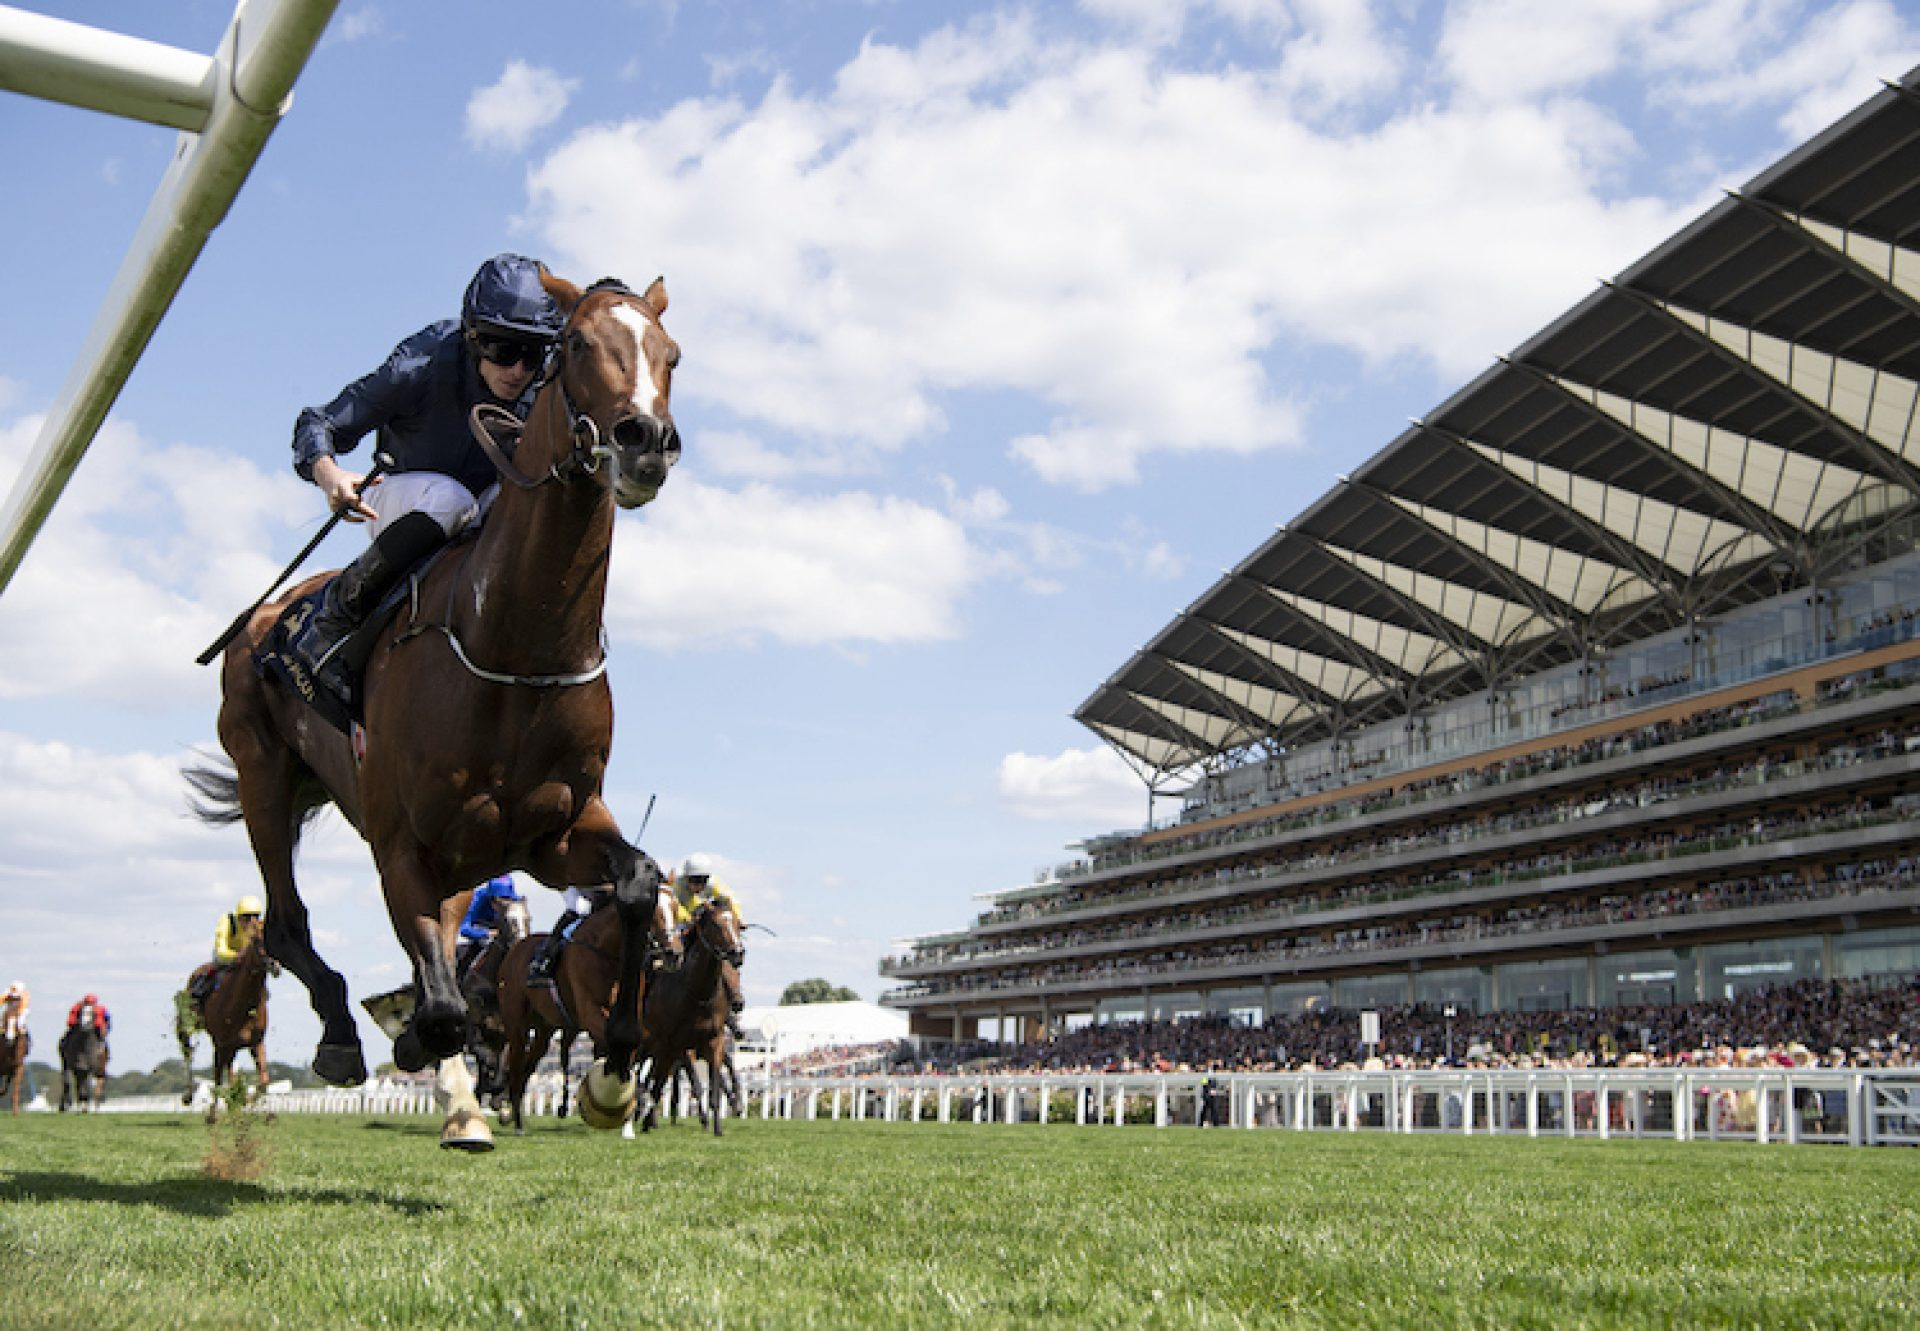 Hunting (Horn (Camelot) winning the G3 Hampton Court Stakes at Royal Ascot